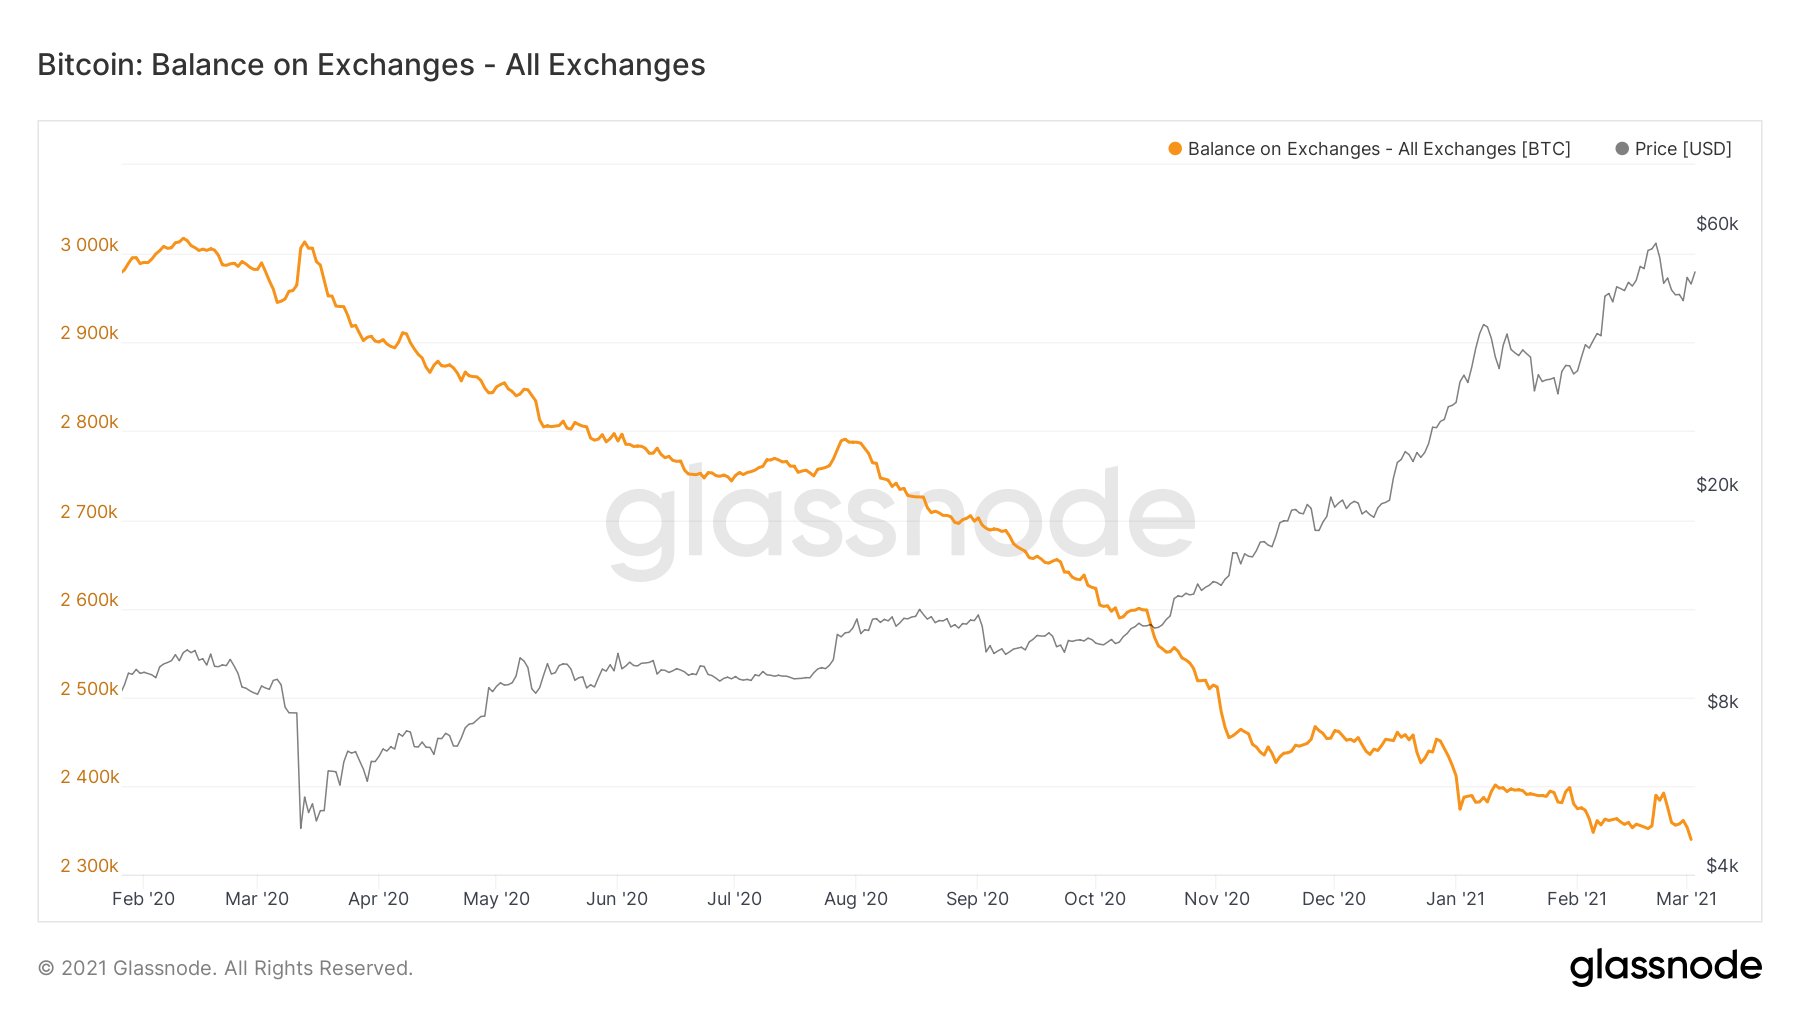 Bitcoin Balance on Exchanges by Glassnode